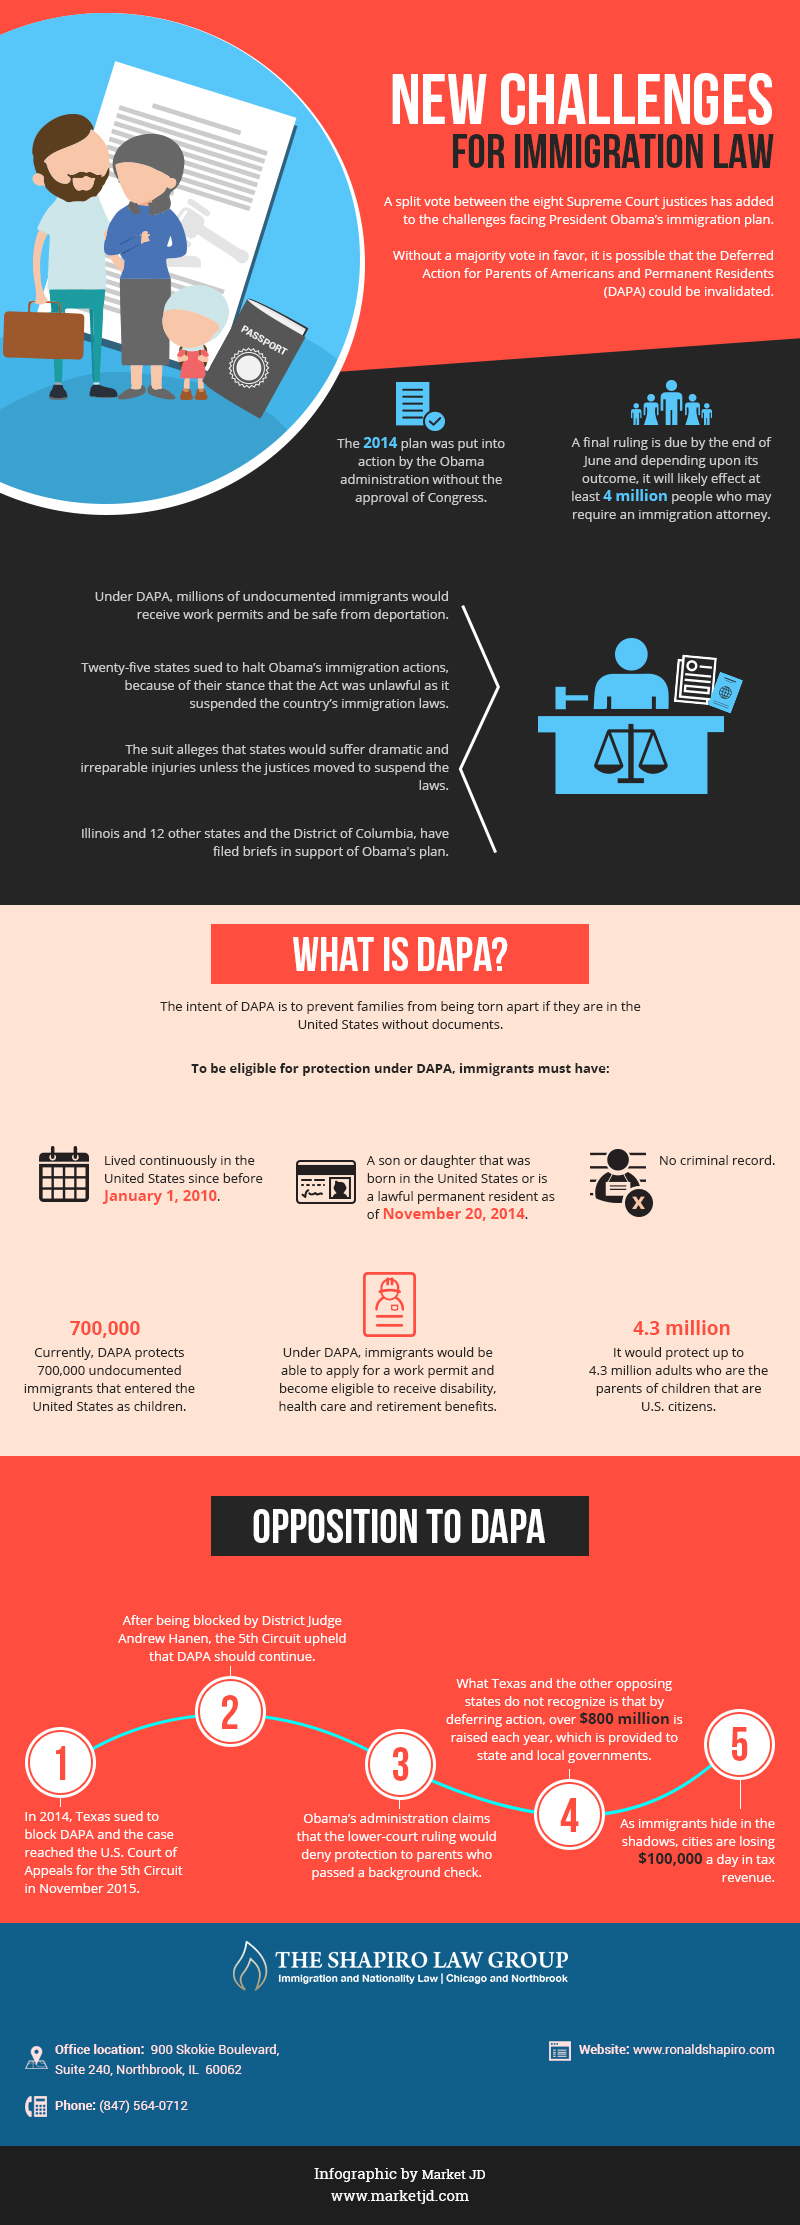 infographic_New Challenges for Immigration Law